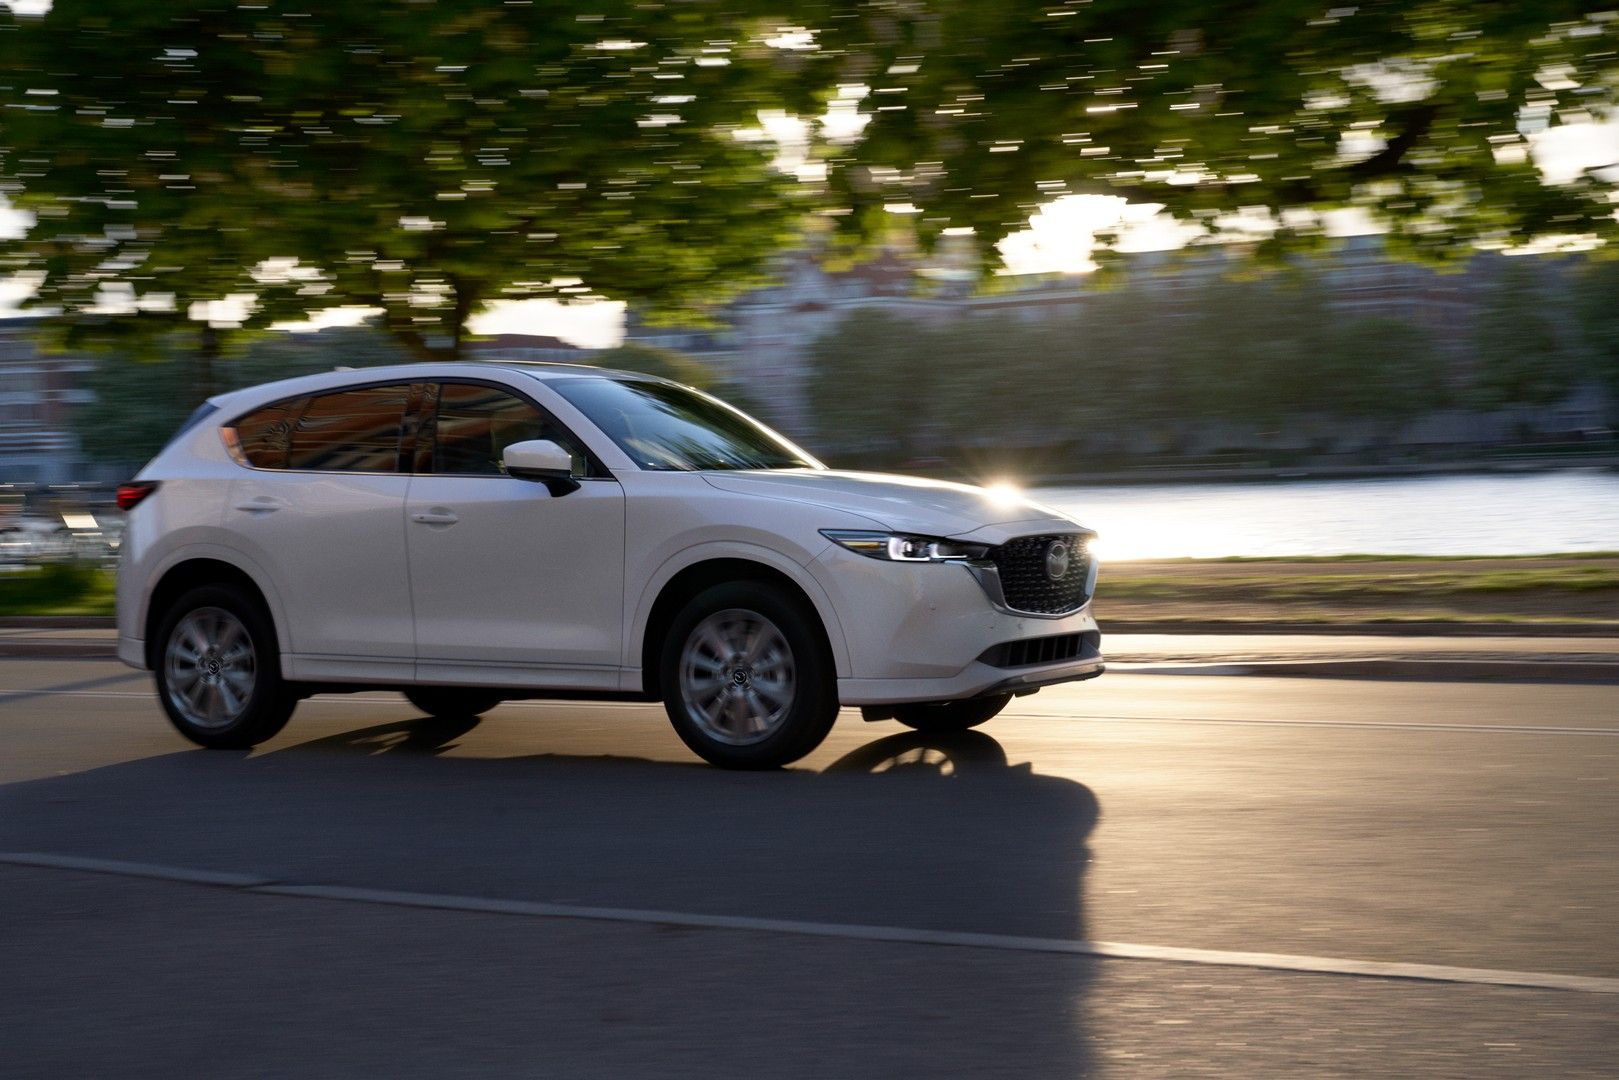 Shortly after the Chinese Ministry of Industry revealed the patent photos of the refreshed Mazda CX-5, the crossover SUV has debuted on official terms. Read on to discover what the international version brings to the table.